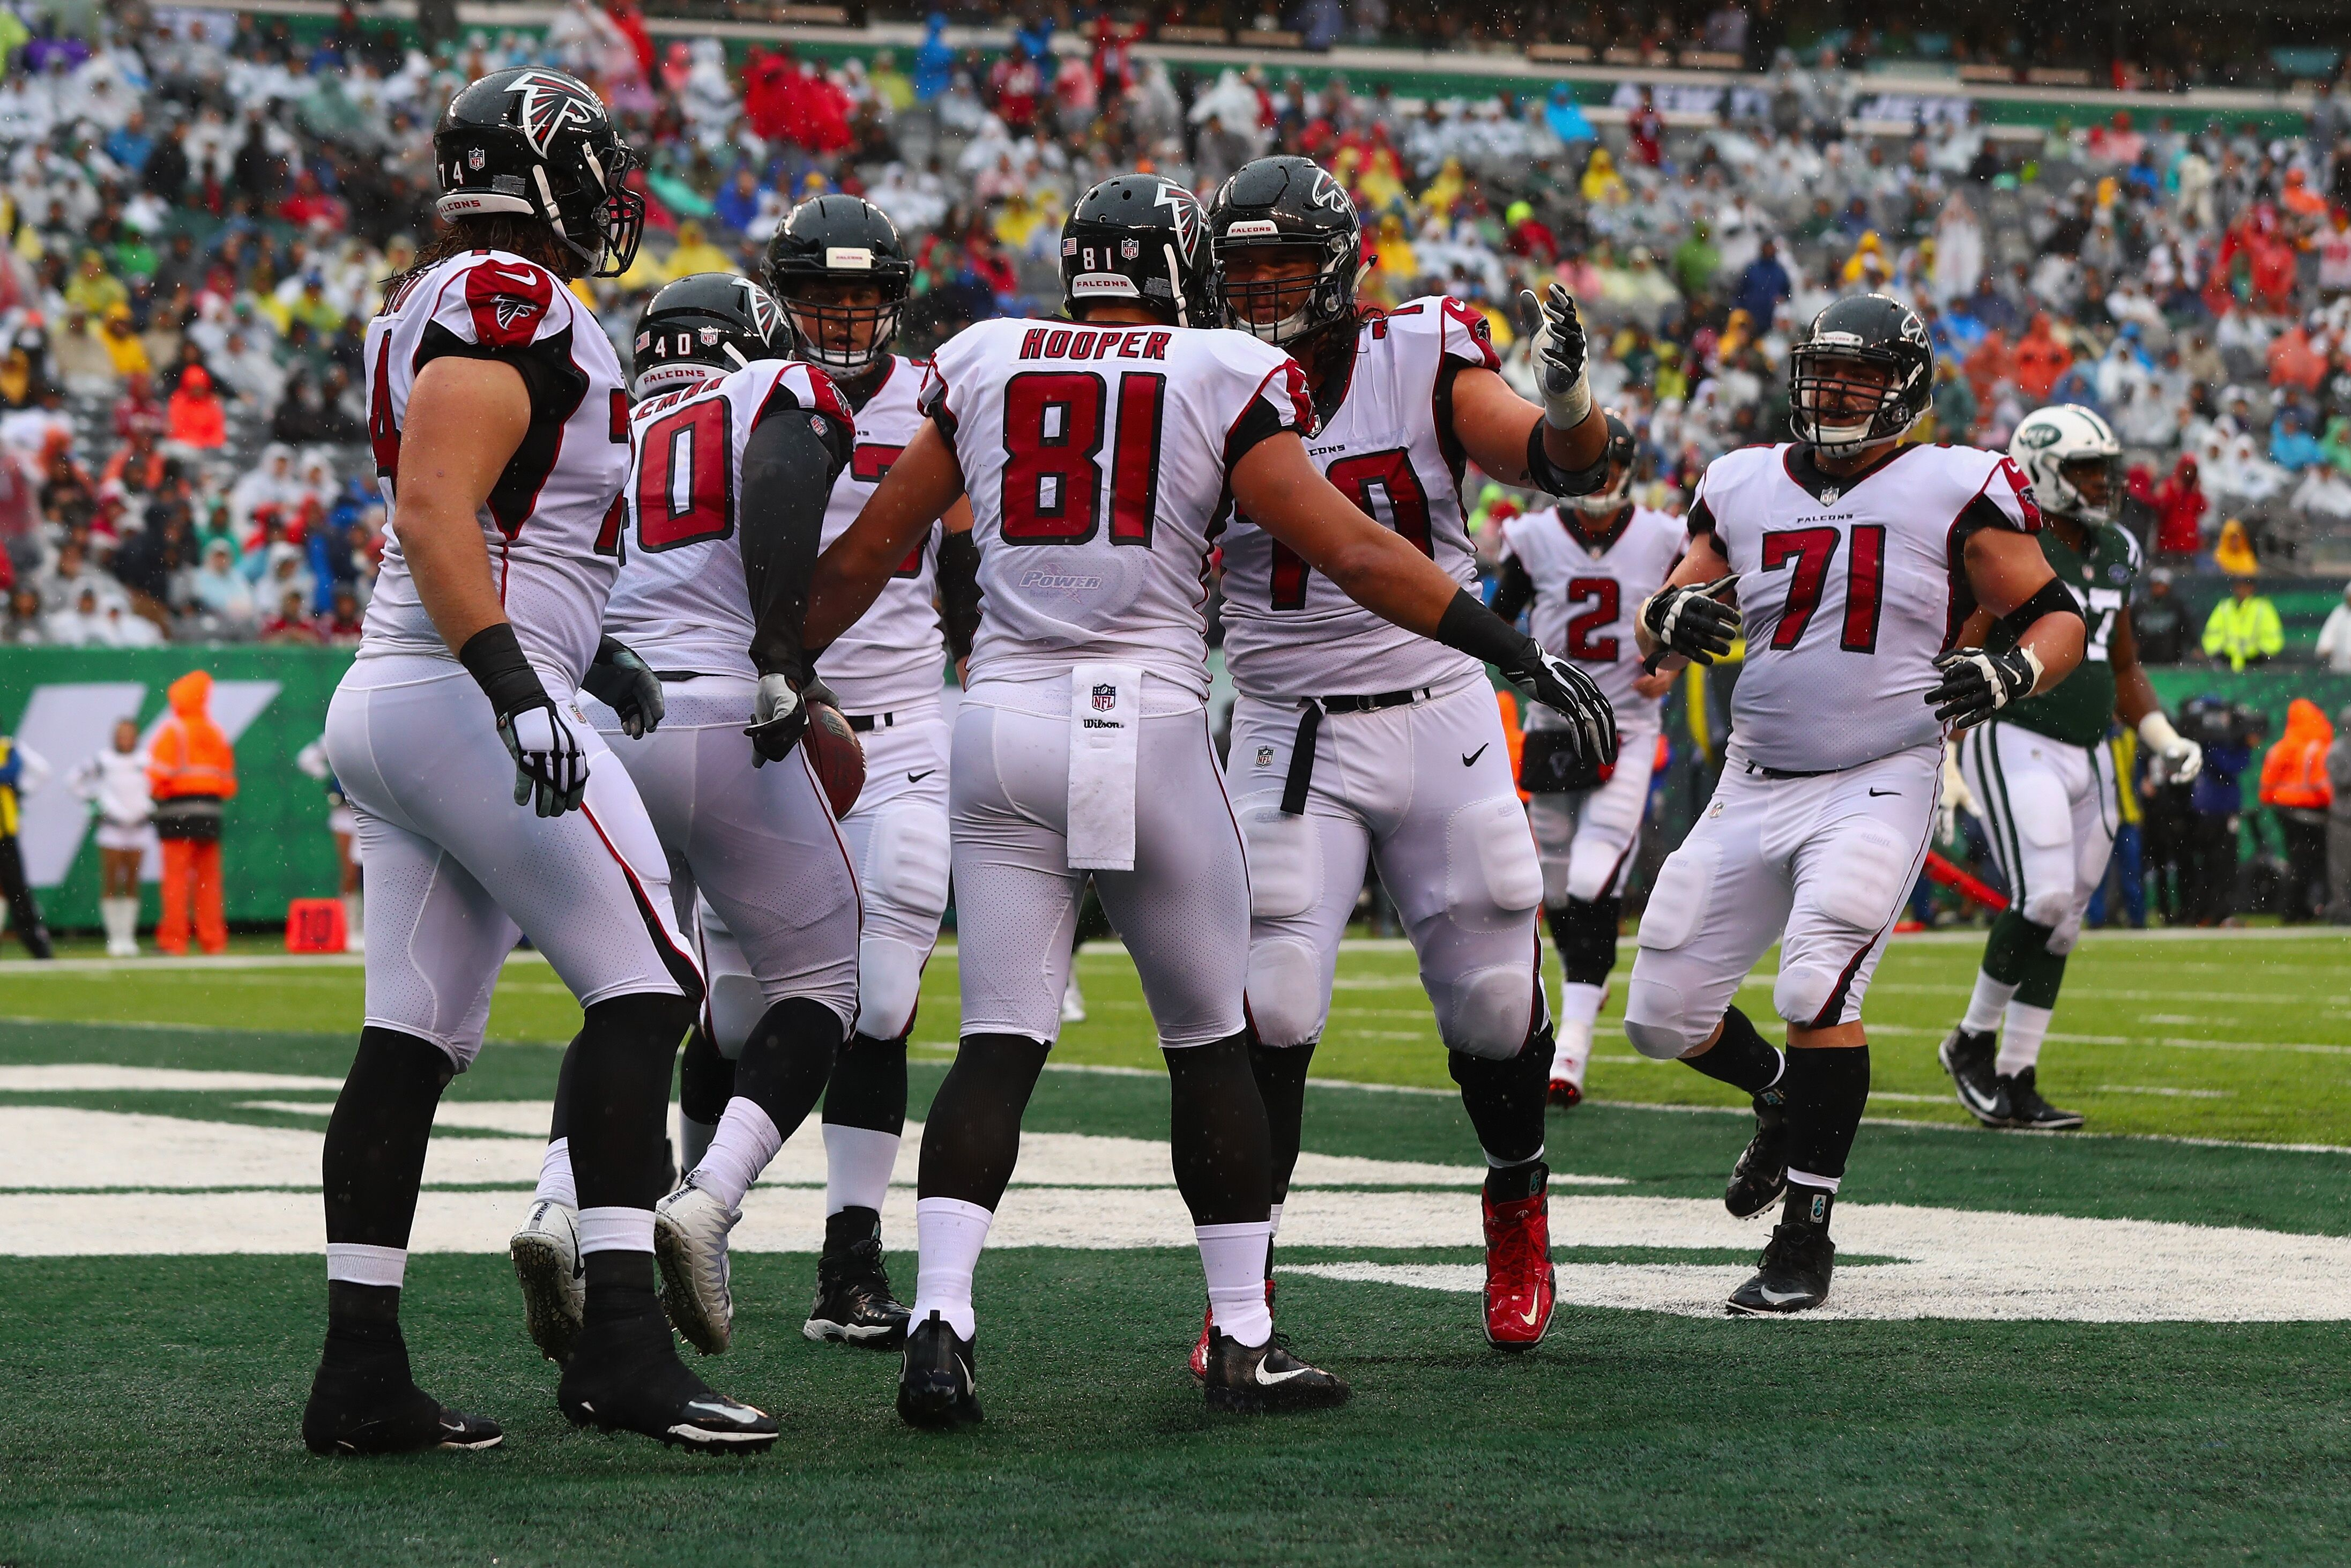 Atlanta Falcons Images: Atlanta Falcons: 3 Players Who Saw Their Stock Rise In